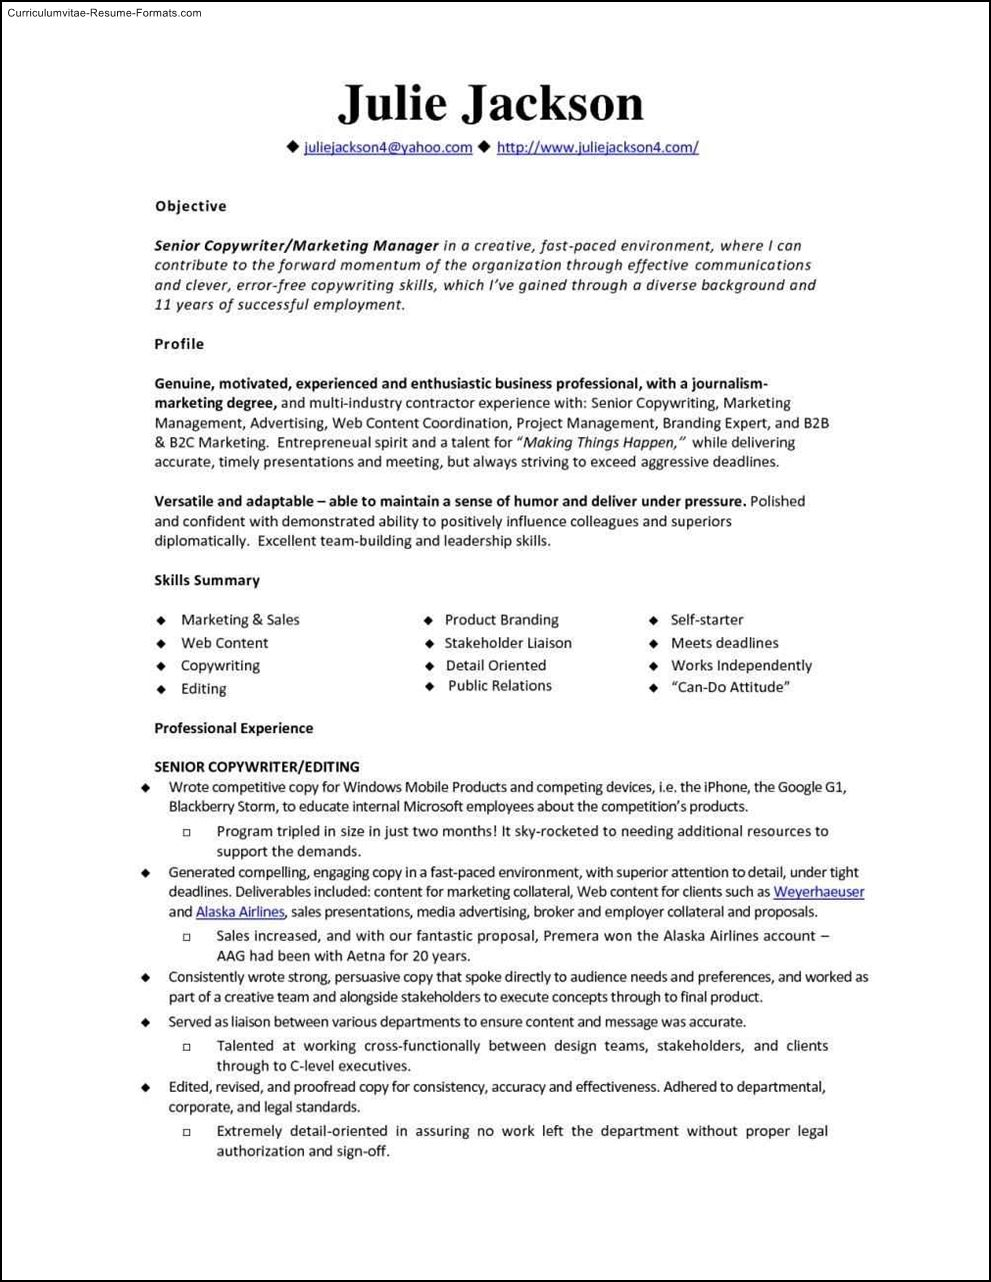 resume search for employers truerload6ah gq wonderful job template examples free Resume Free Resume Search For Employers